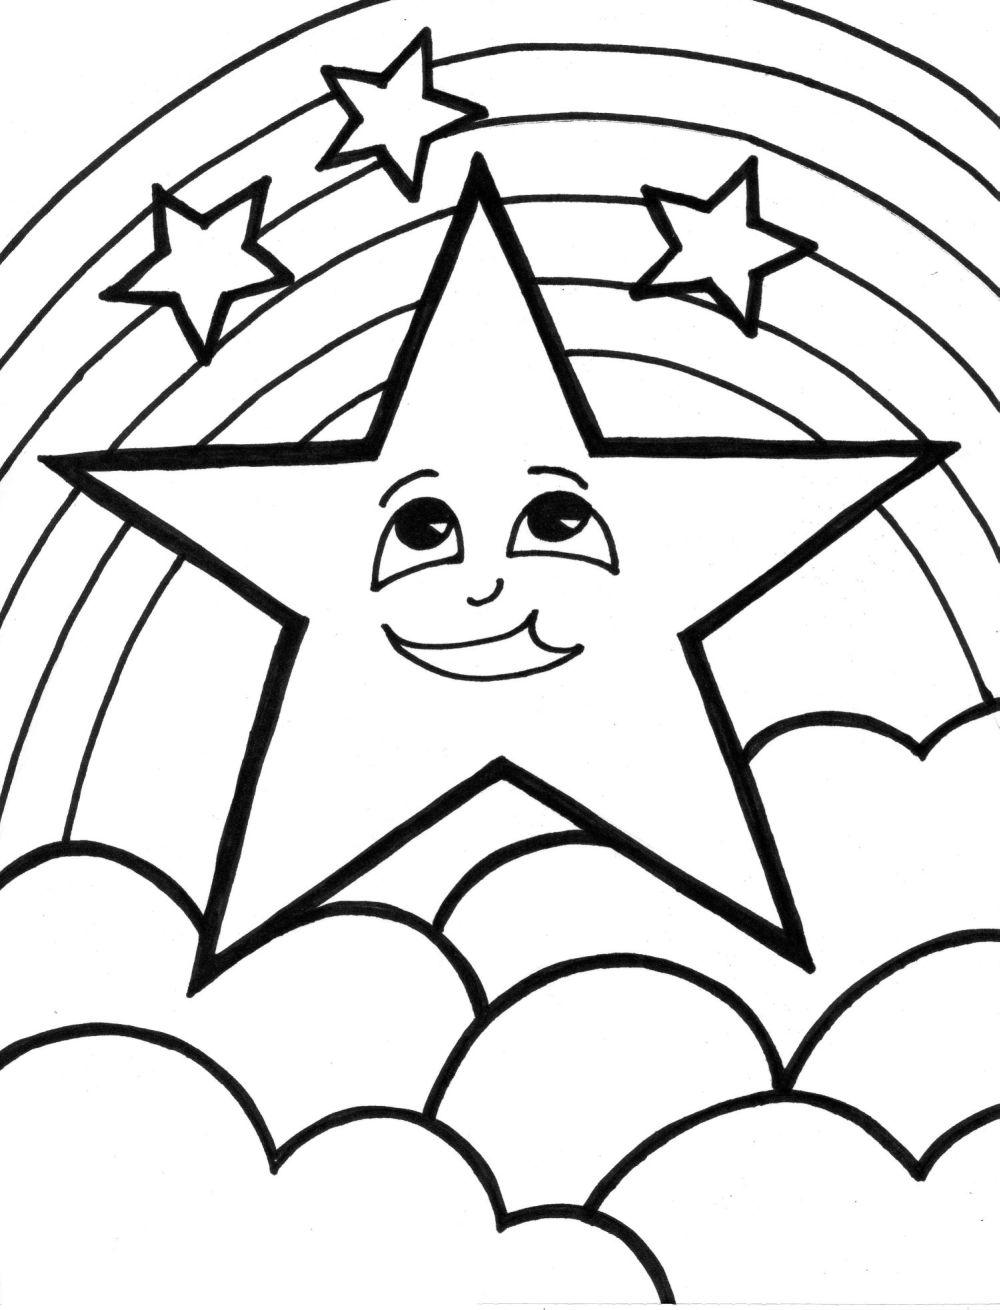 coloring pages for stars - photo#18